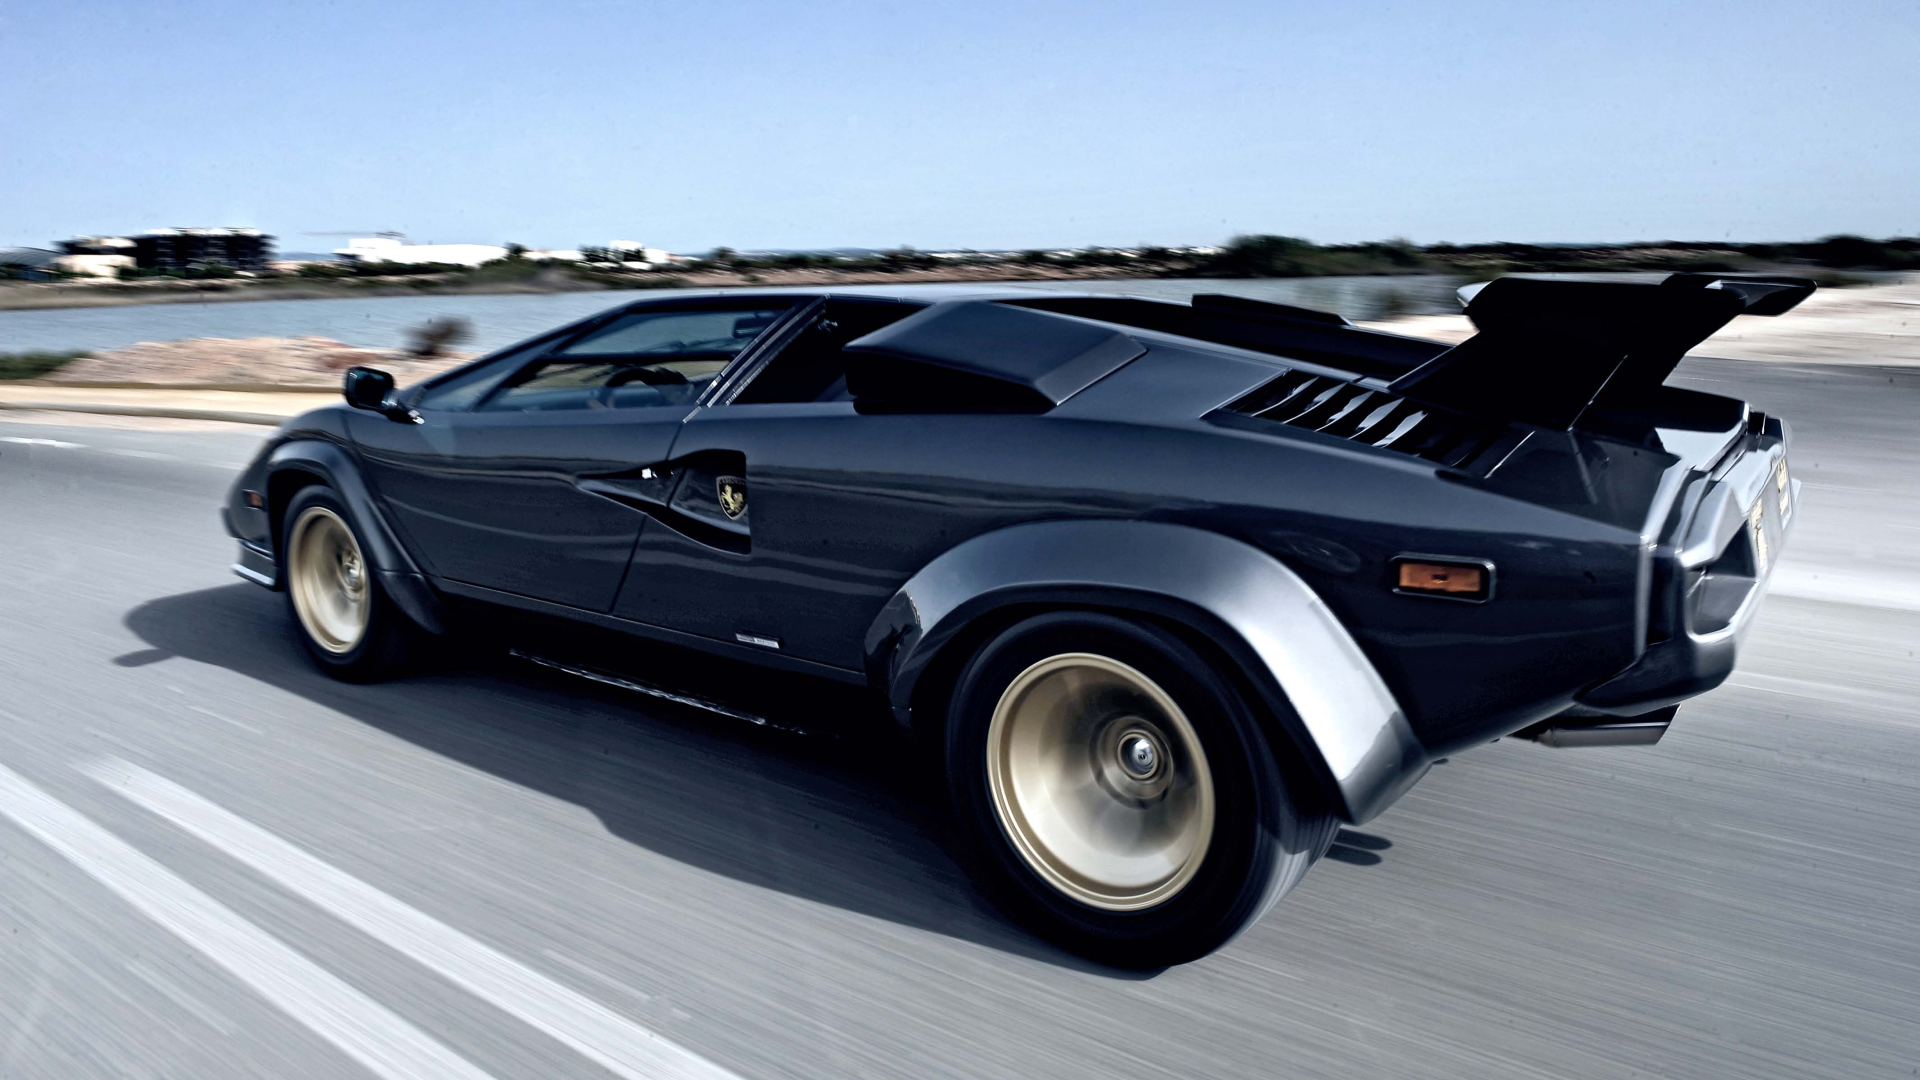 Lamborghini Countach Hd Wallpaper Background Image 1920x1080